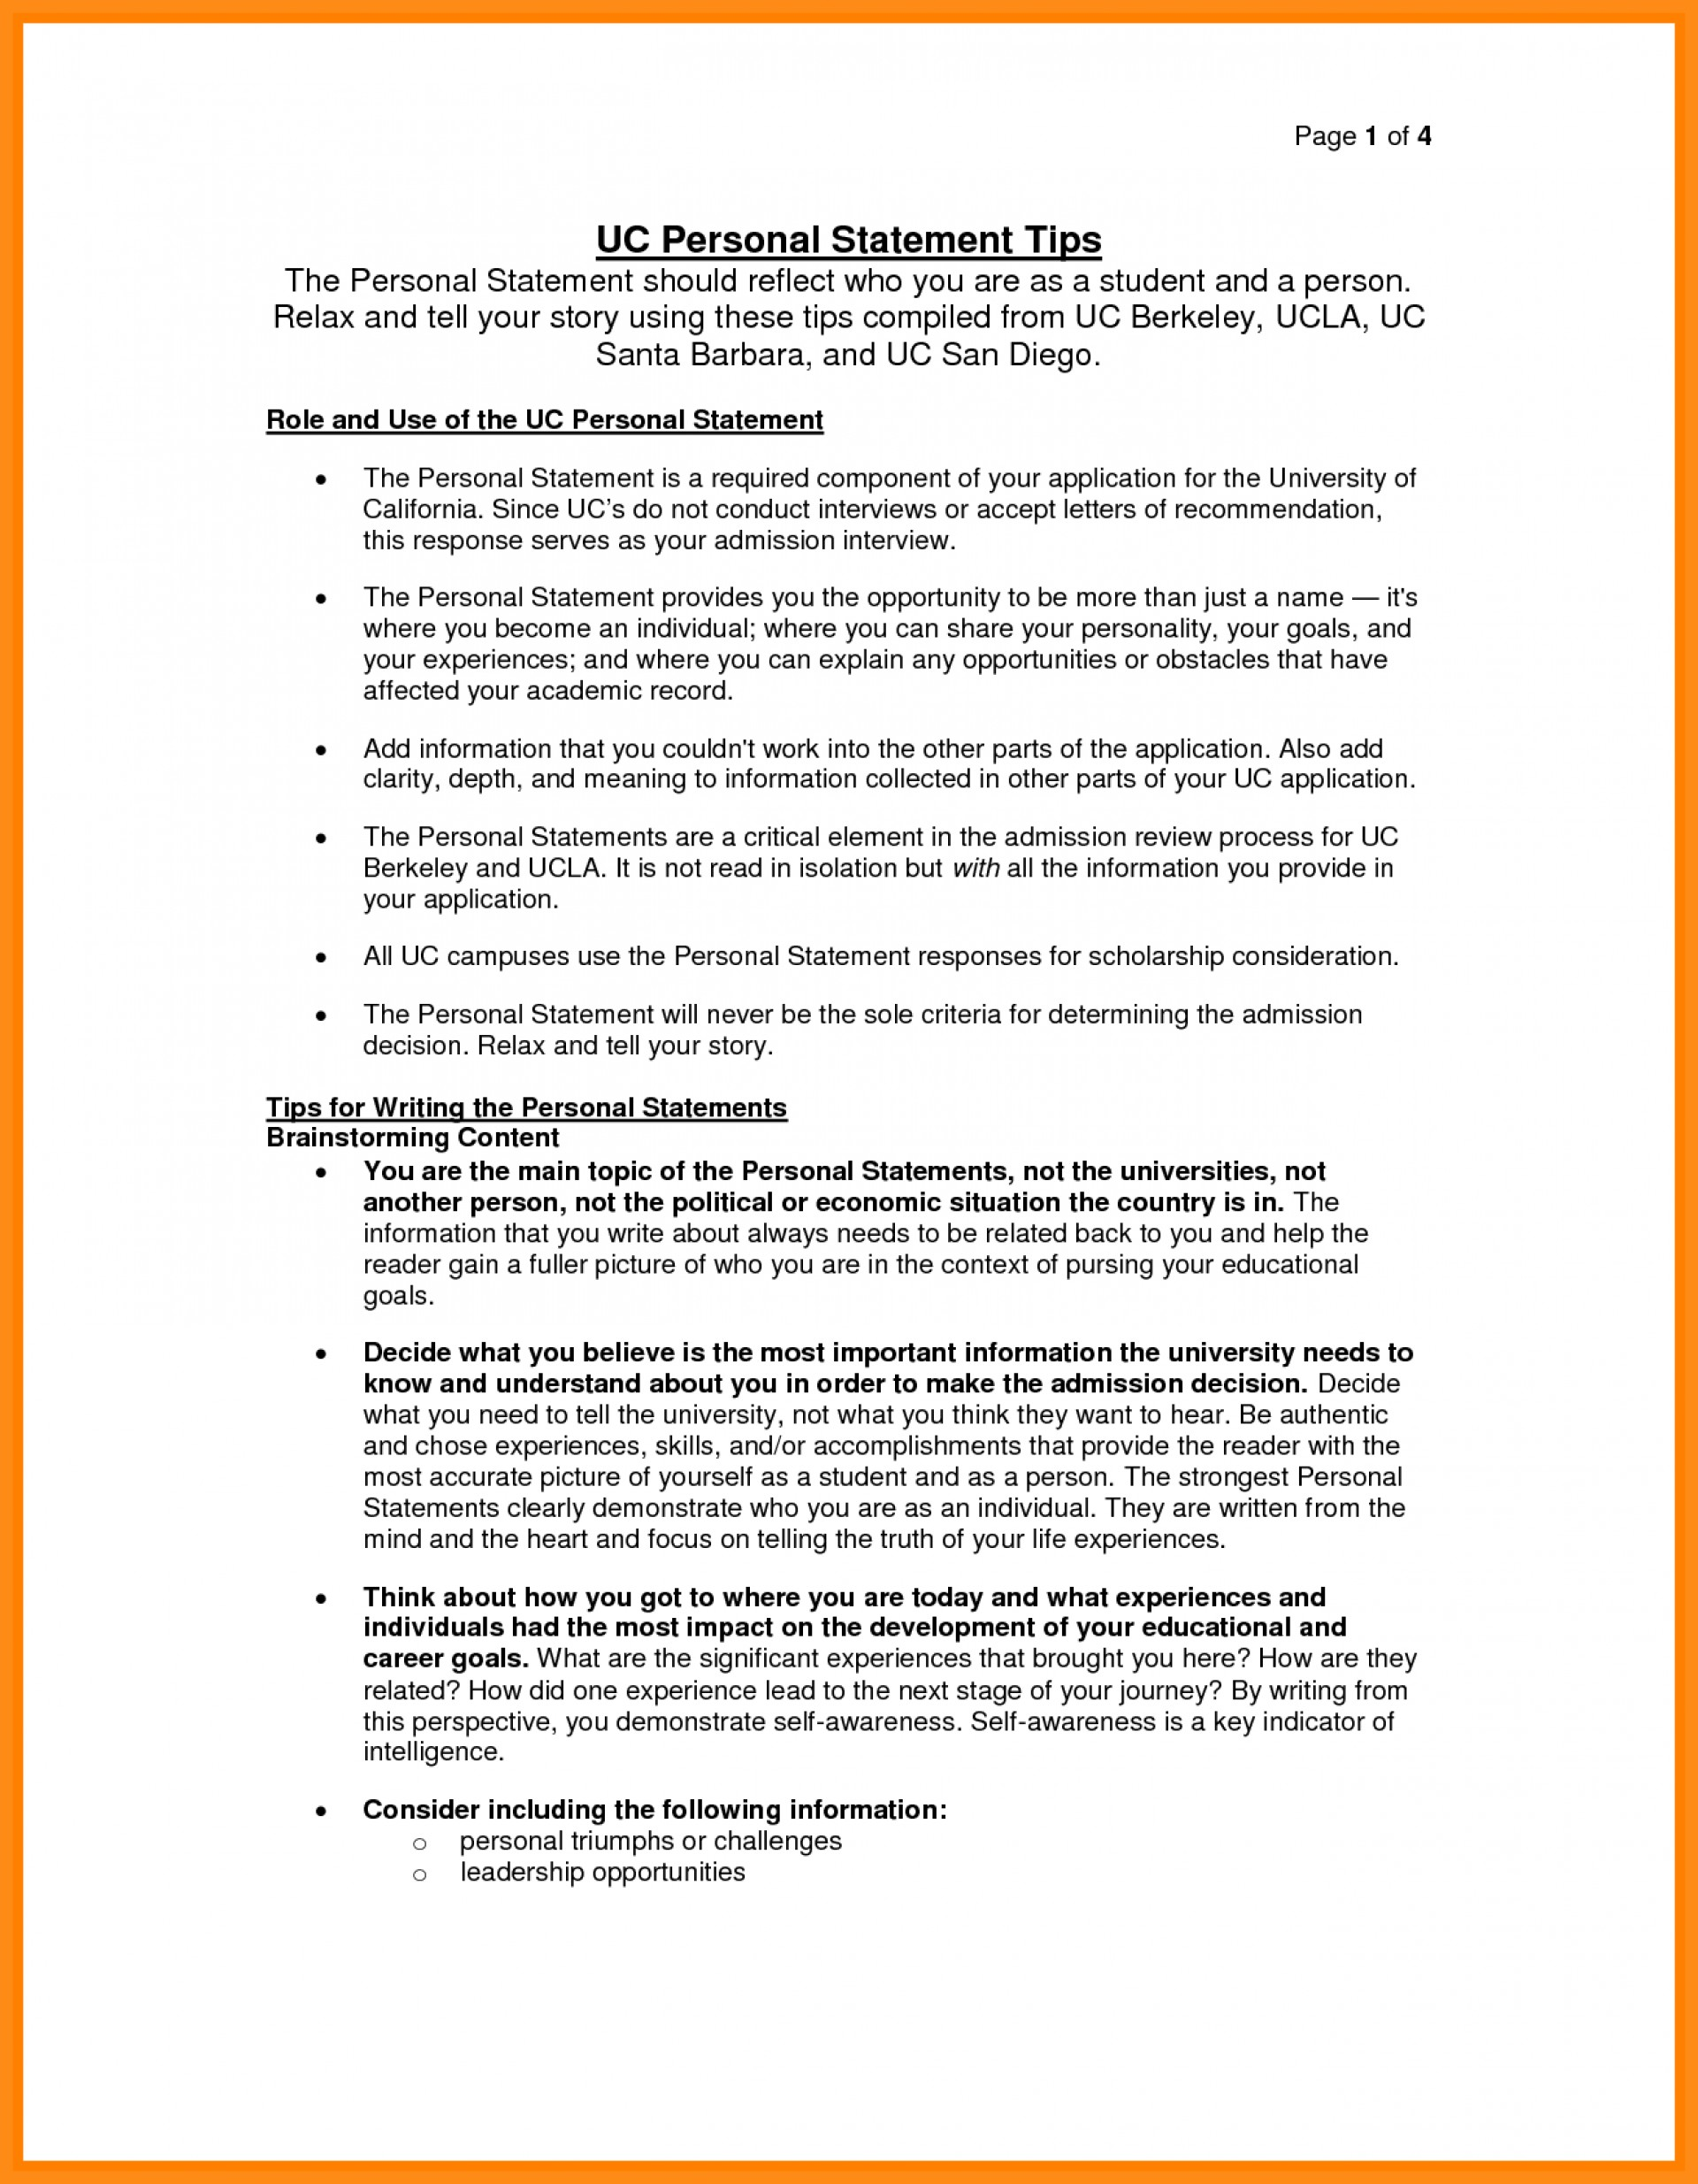 011 Essay Example Uc Personal Statement Prompt Examples Of Statements For Template Mrnpttfa Application Imposing Prompts 2015 2016-17 Berkeley 1920